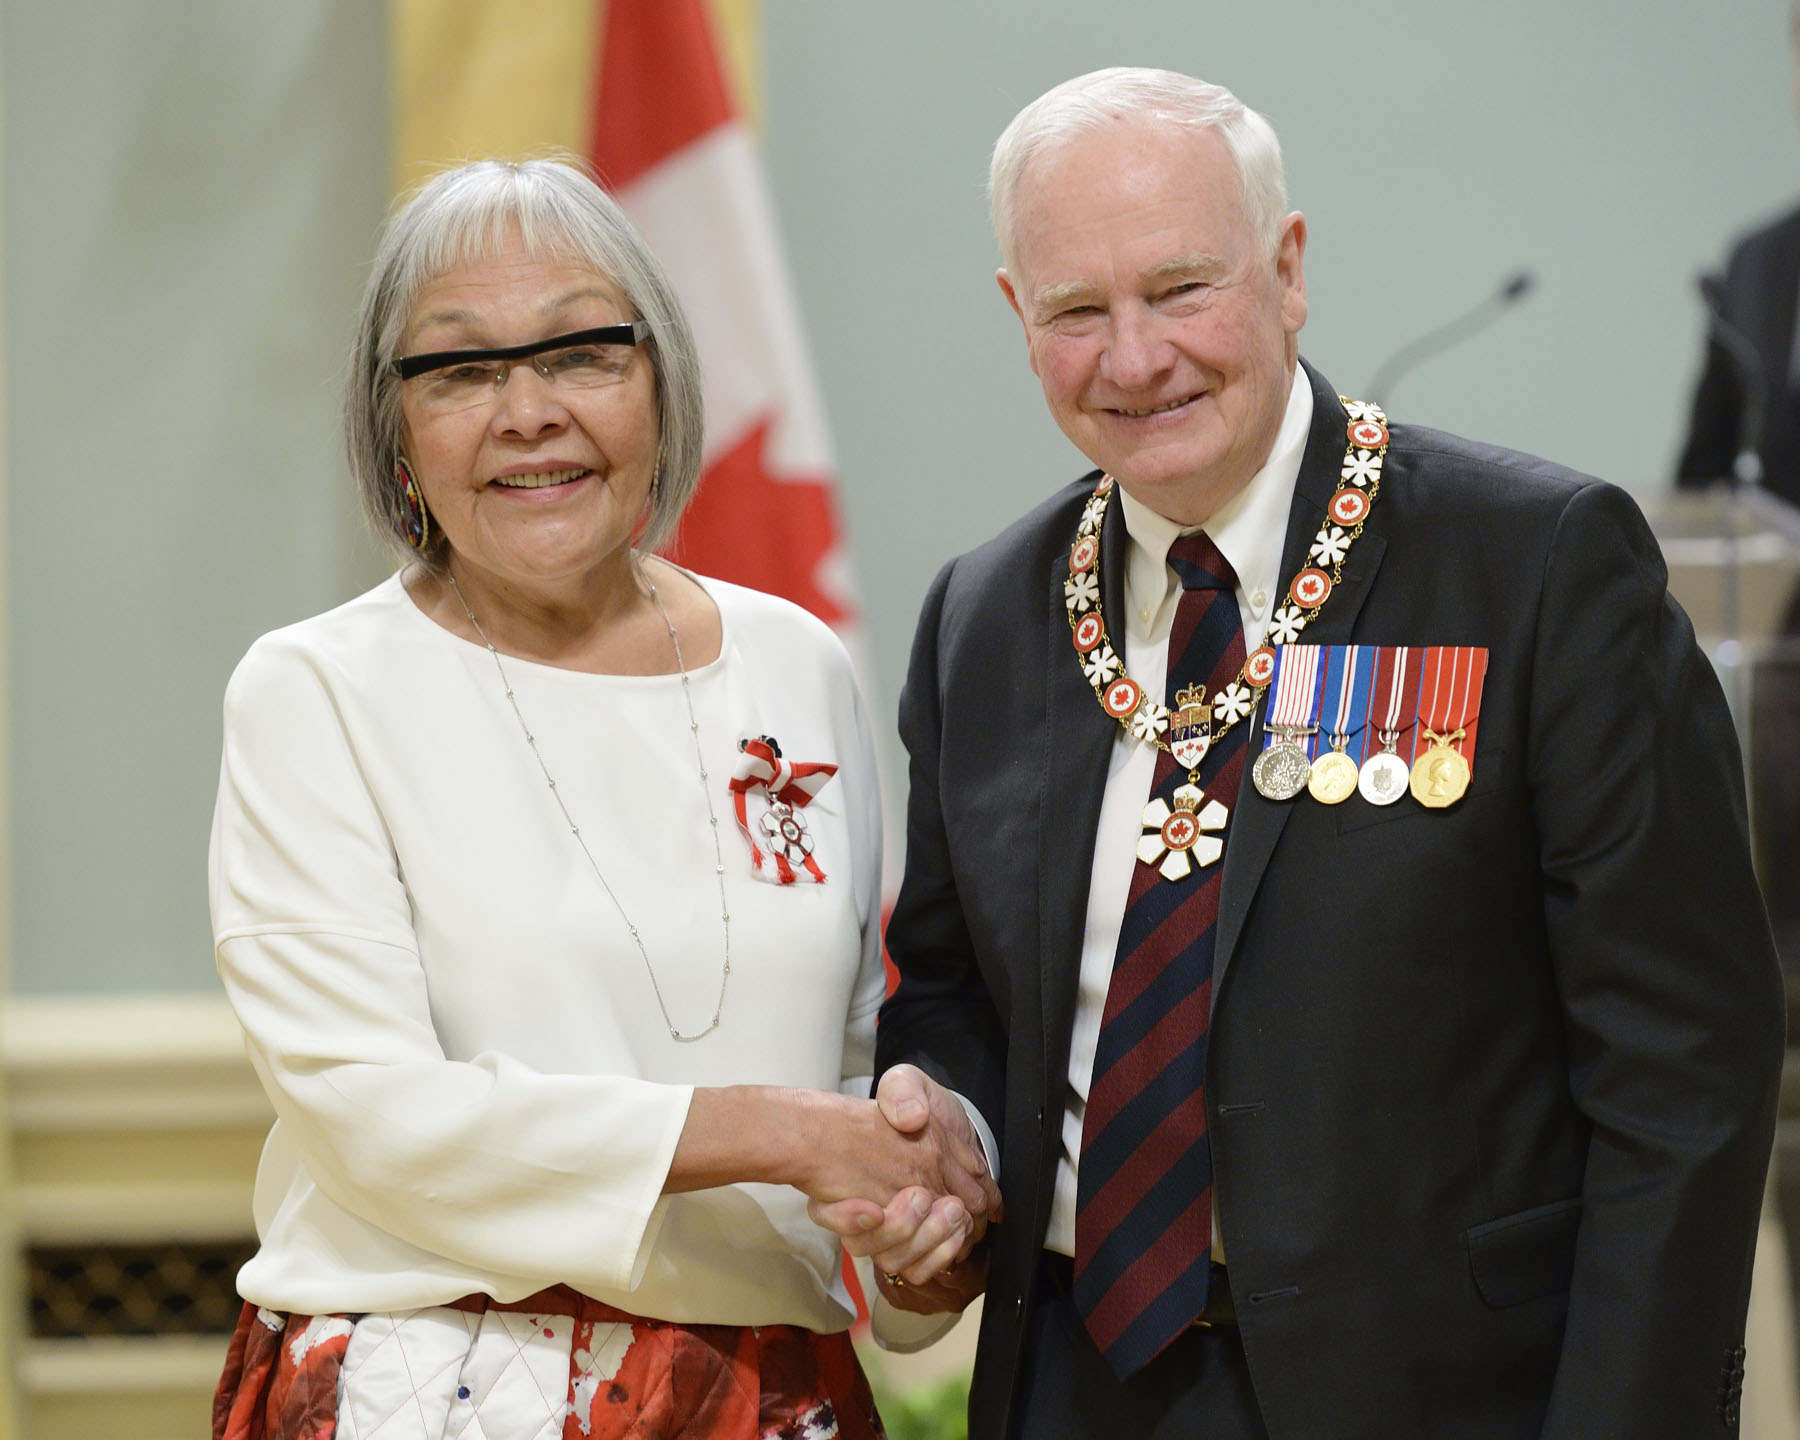 A Cree born and raised on the Kehewin First Nation in Alberta, Madeleine Dion Stout, C.M. (Tsawwassen, British Columbia) has played a major role in the development of Aboriginal health care and education. After working in the field for over a decade and becoming one of the first Aboriginal university-educated nurses, she joined the federal Department of Health and Welfare. As a special policy advisor to the Minister, she played a key role in initiatives such as the devolution of health powers to Indigenous communities in the late 1980s. Now the president of Dion Stout Reflections Inc., she adopts a Cree lens in her research, writing and lectures on First Nations health.